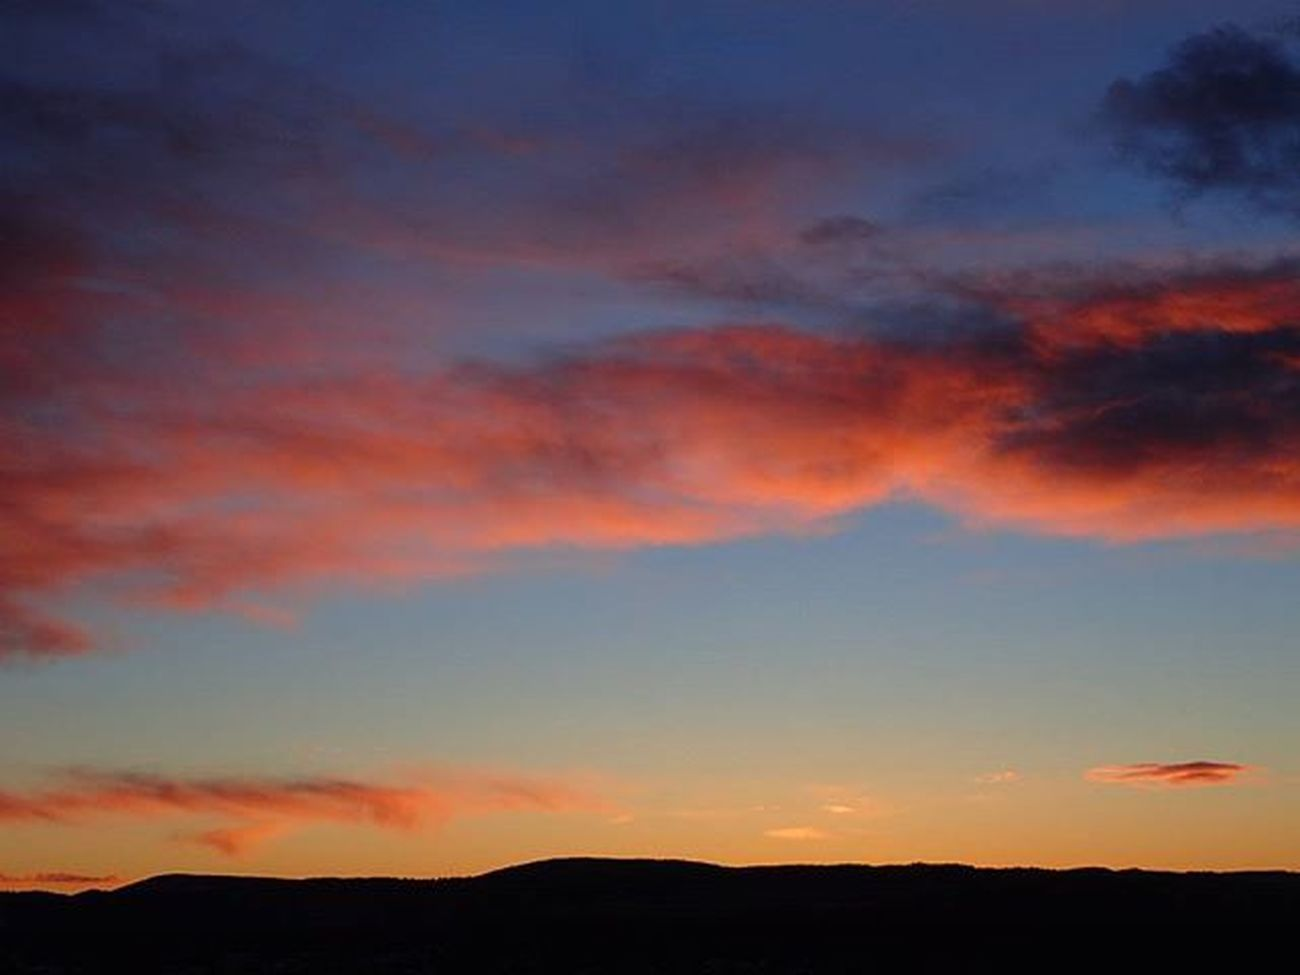 🌞🌞🌞🌅eveRy daY diffeRenT suNriSe🌅🌞🌞🌞 Kongsberg Buskerud Wu_norway Mittnorge Norsknatur Igscandinavia Loves_scandinavia Loves_nature Loves_norway Ic_skies Ig_sunrisesunset Sunrise_sunsets_aroundworld Bloodysky Skylovers Skyporn Ilovesunrises Cloudporn RedSky Mylifemyadventure Lifeisgood Earlymorning  ILoveMornings Damgooddays Spectacular Ig_neverstopexploring ilovenorway visitnorway